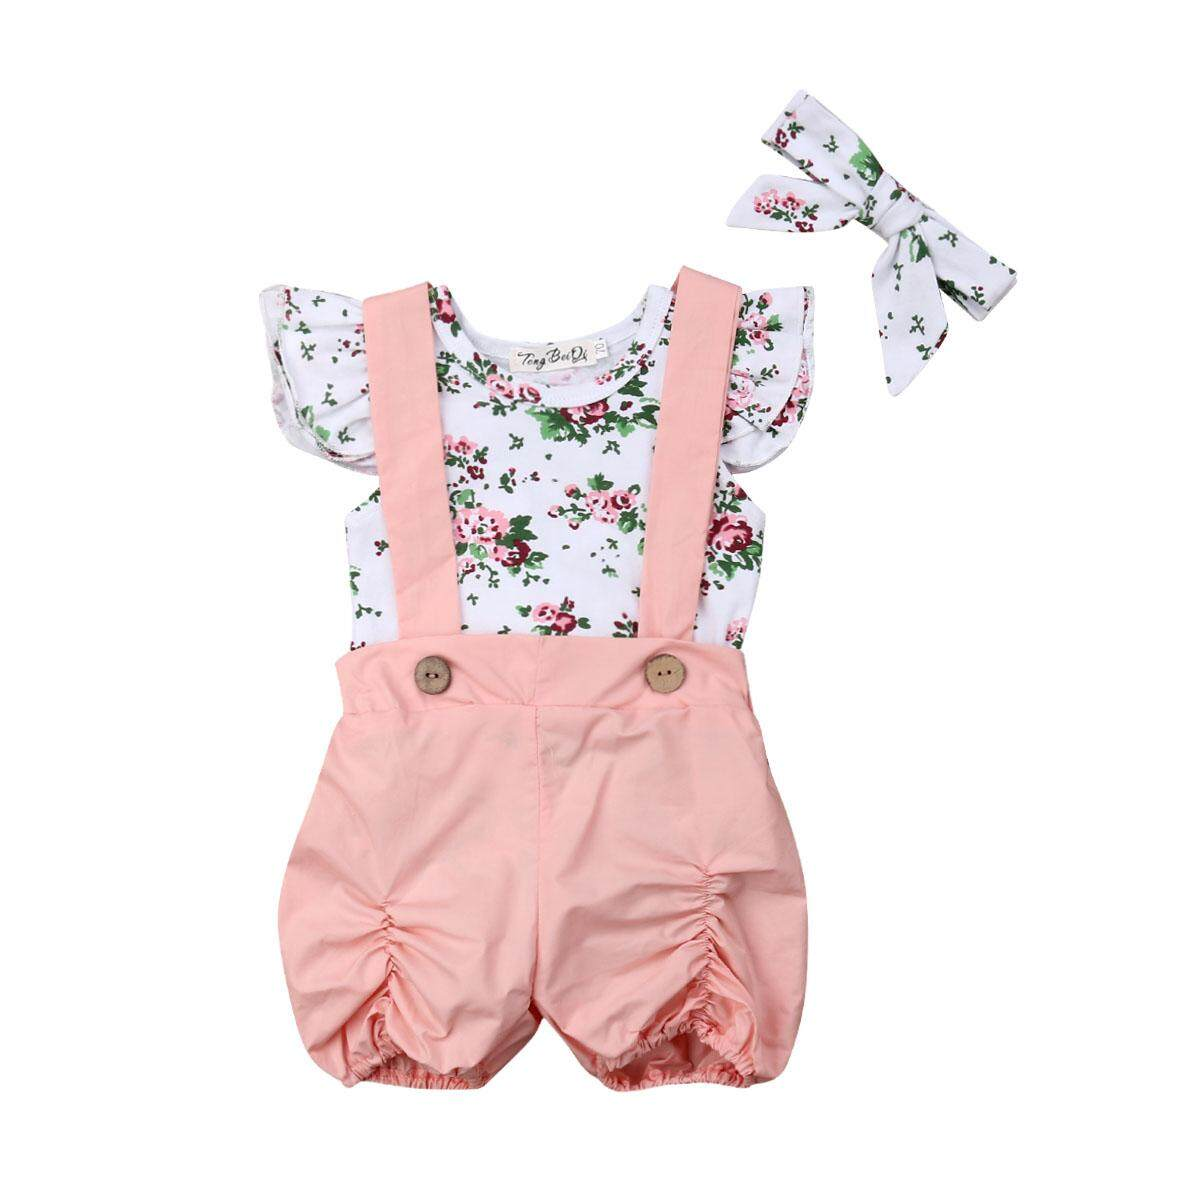 06f30e1ec98e Newborn Kids Baby Girls Floral Tops Romper Bib Pants Overalls Outfit Clothes  Set